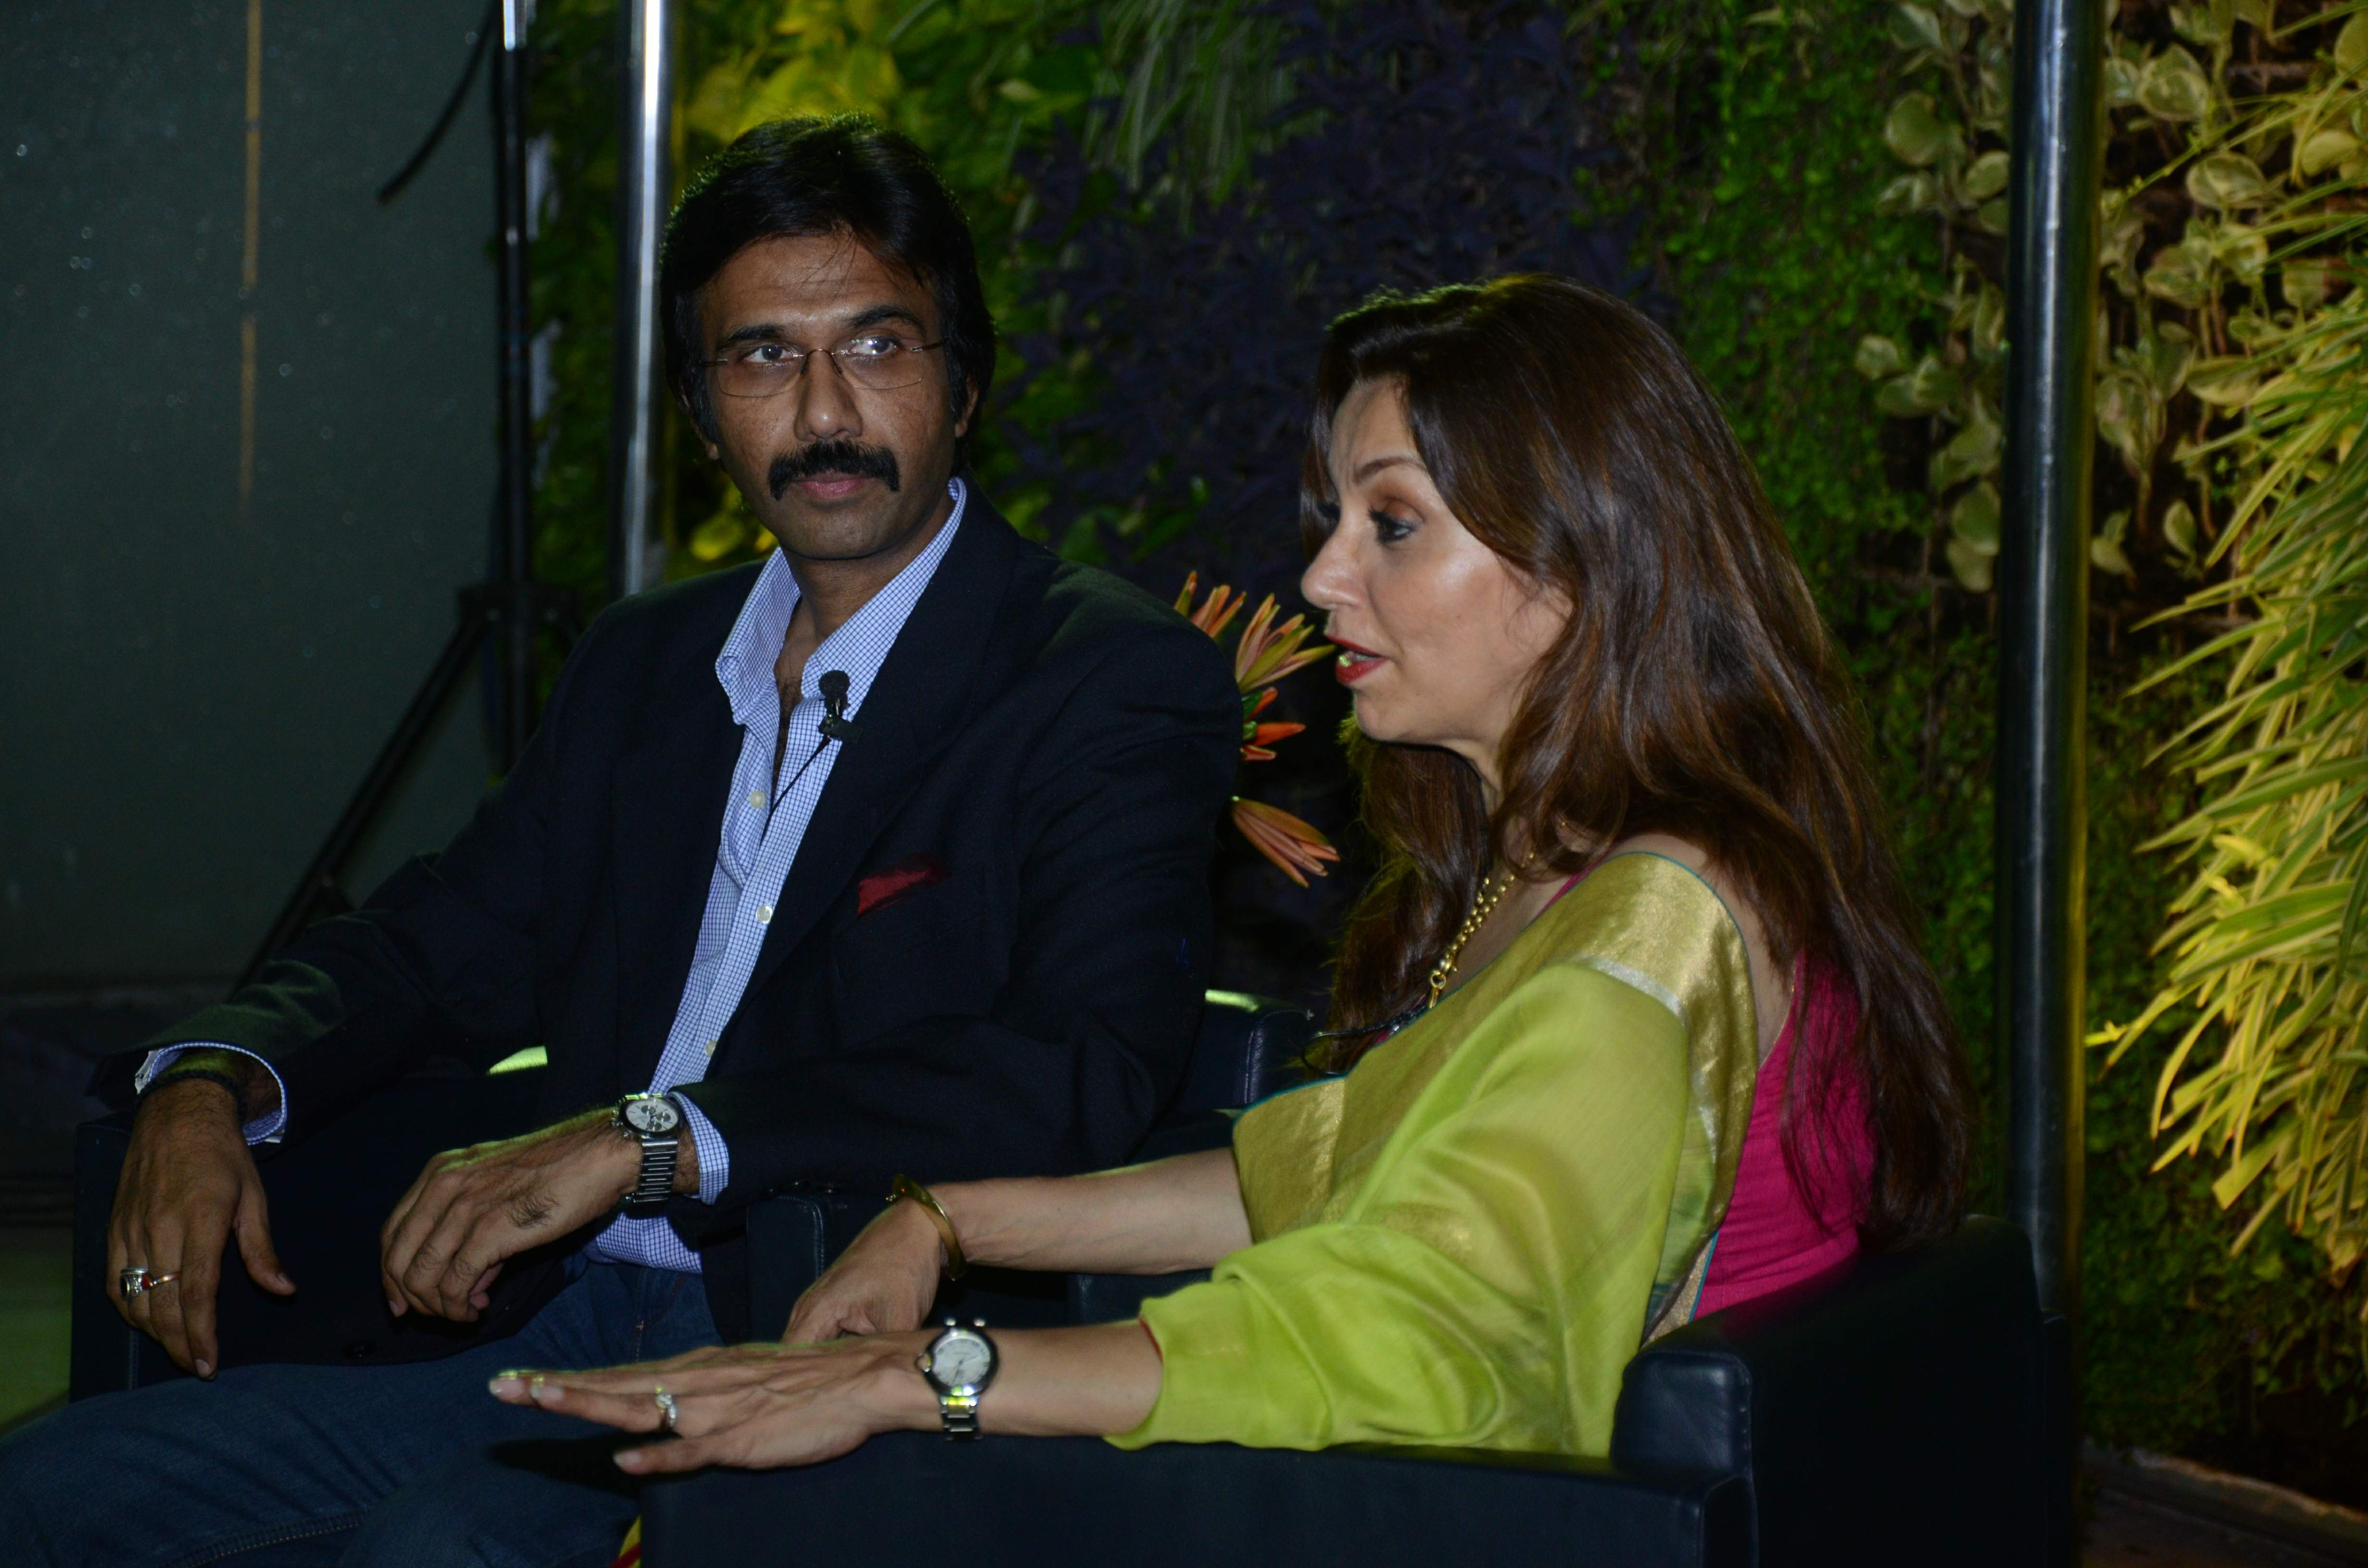 Mohammad Ali Baig and Lillete Dubey in the onstage conversation titled 'Little Nuances'